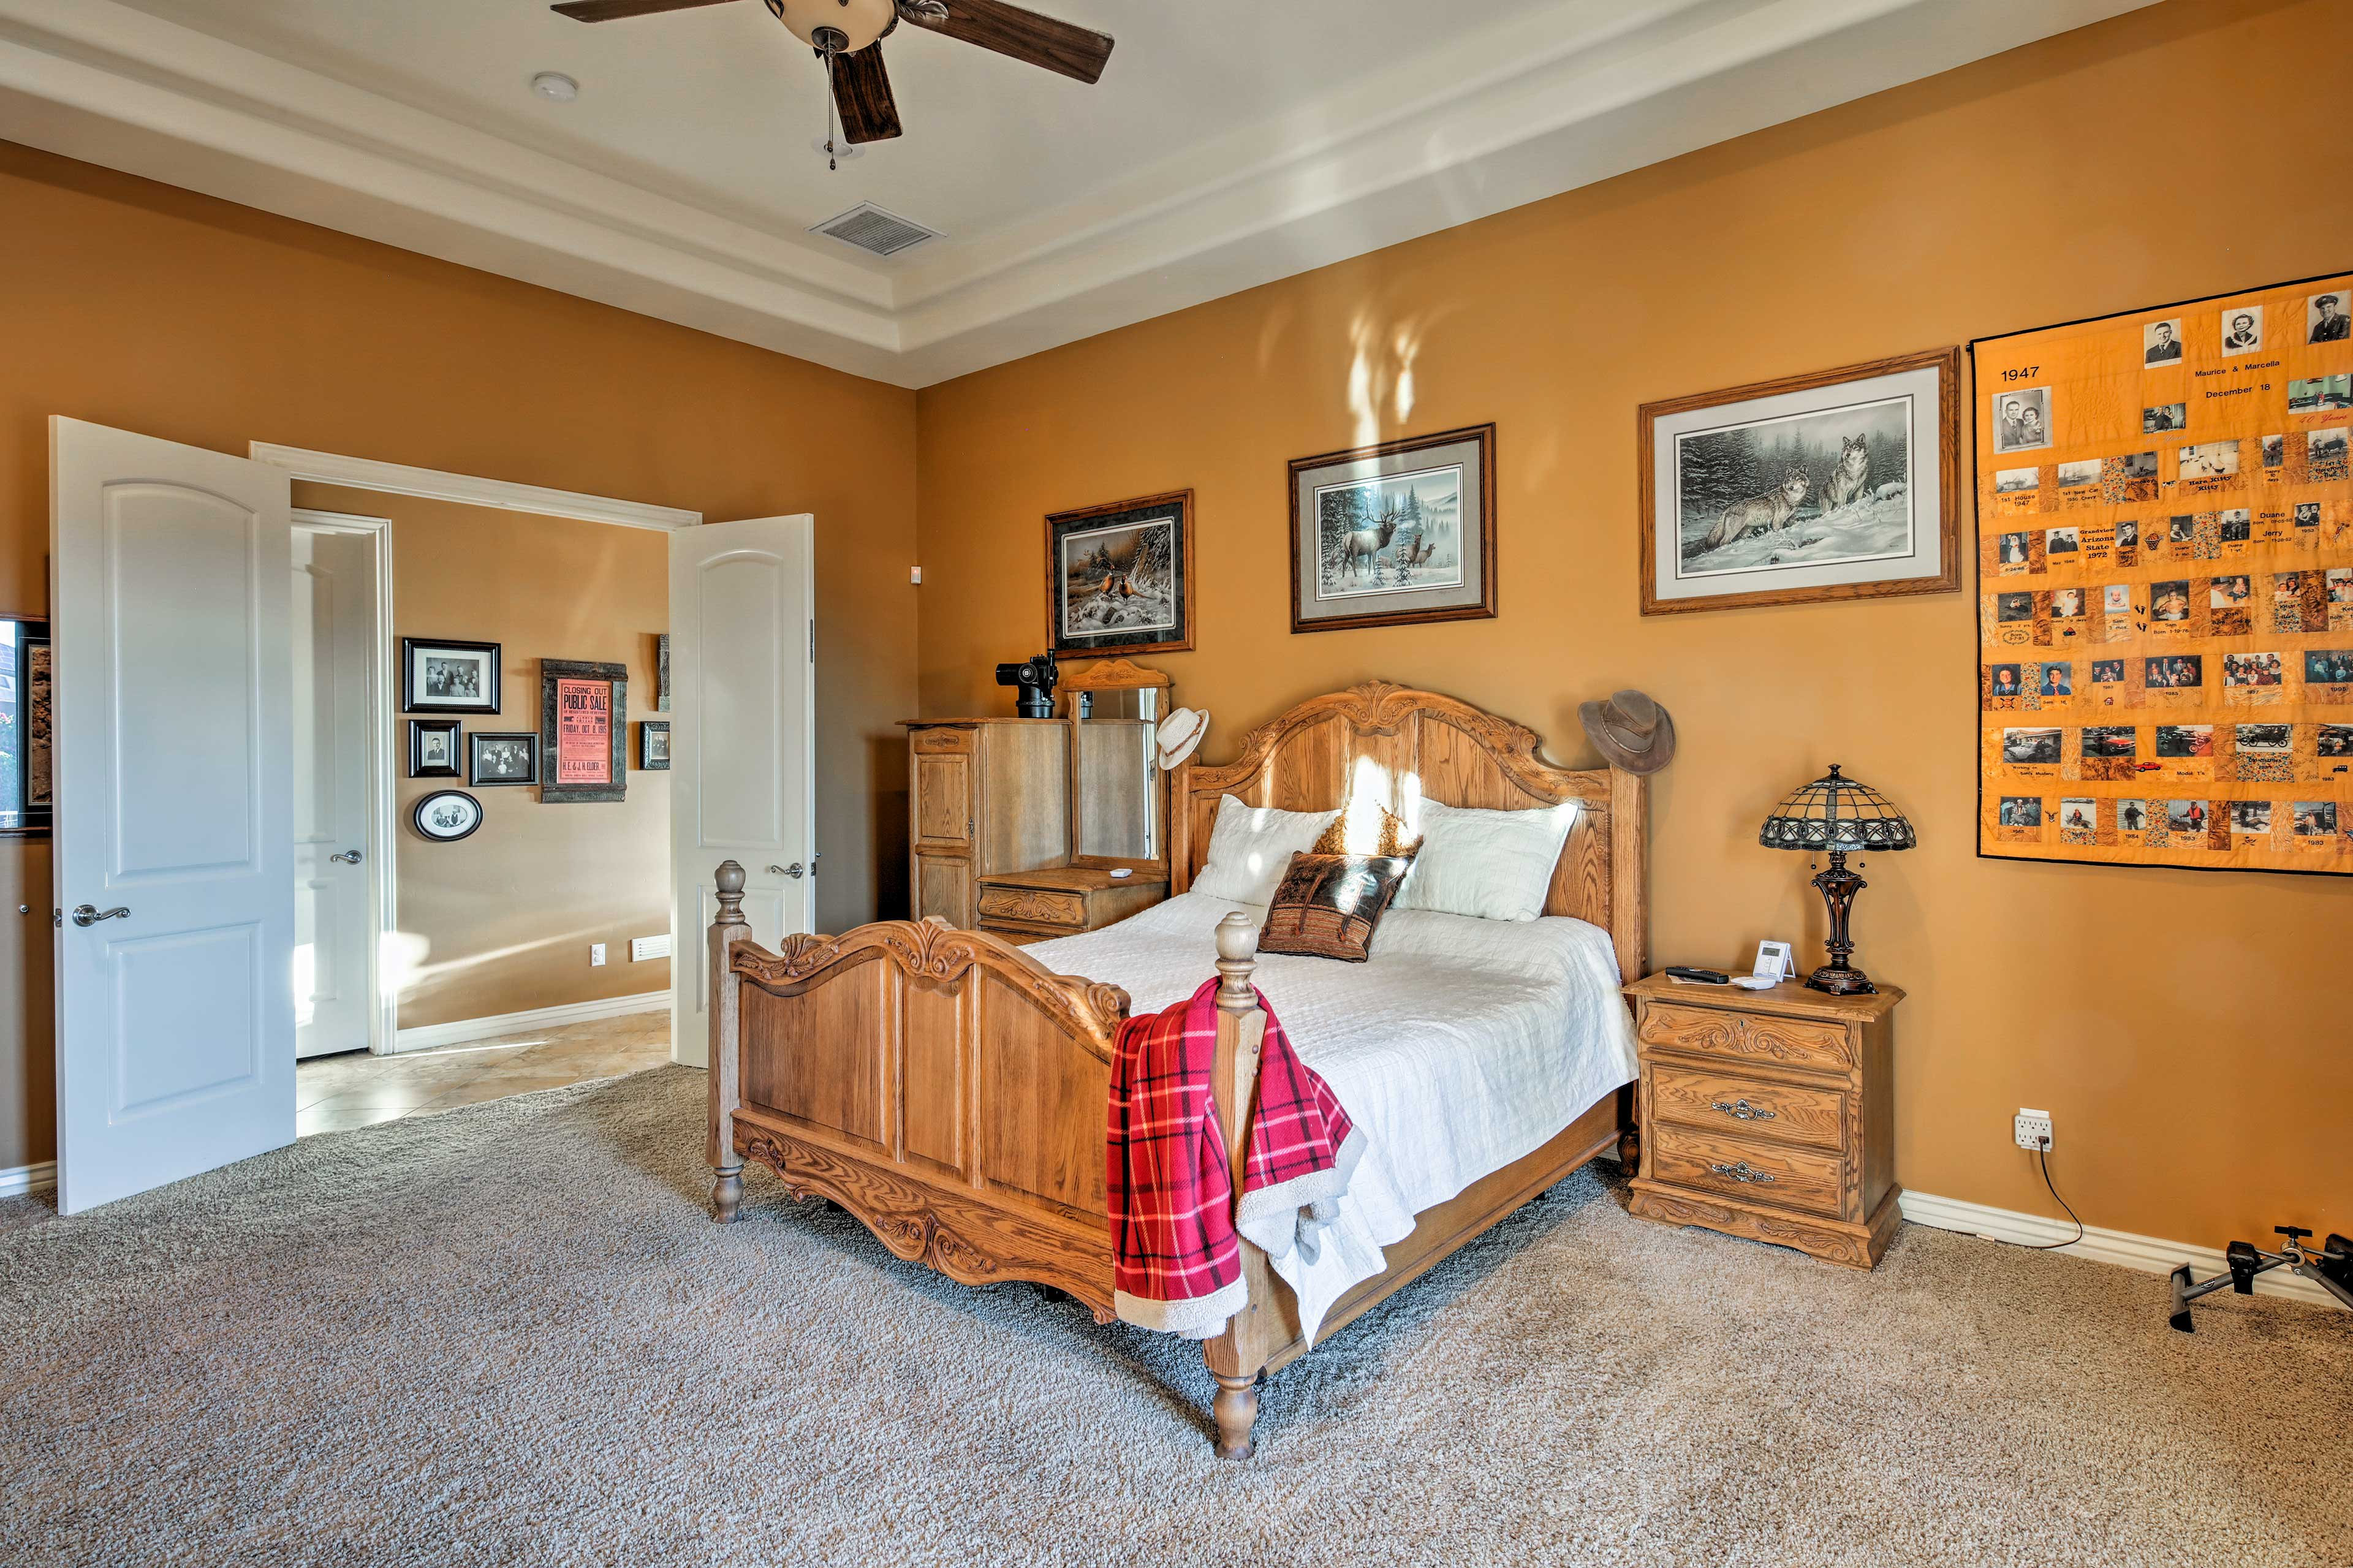 Thoughtful decor and wood accents make this bedroom cozy.